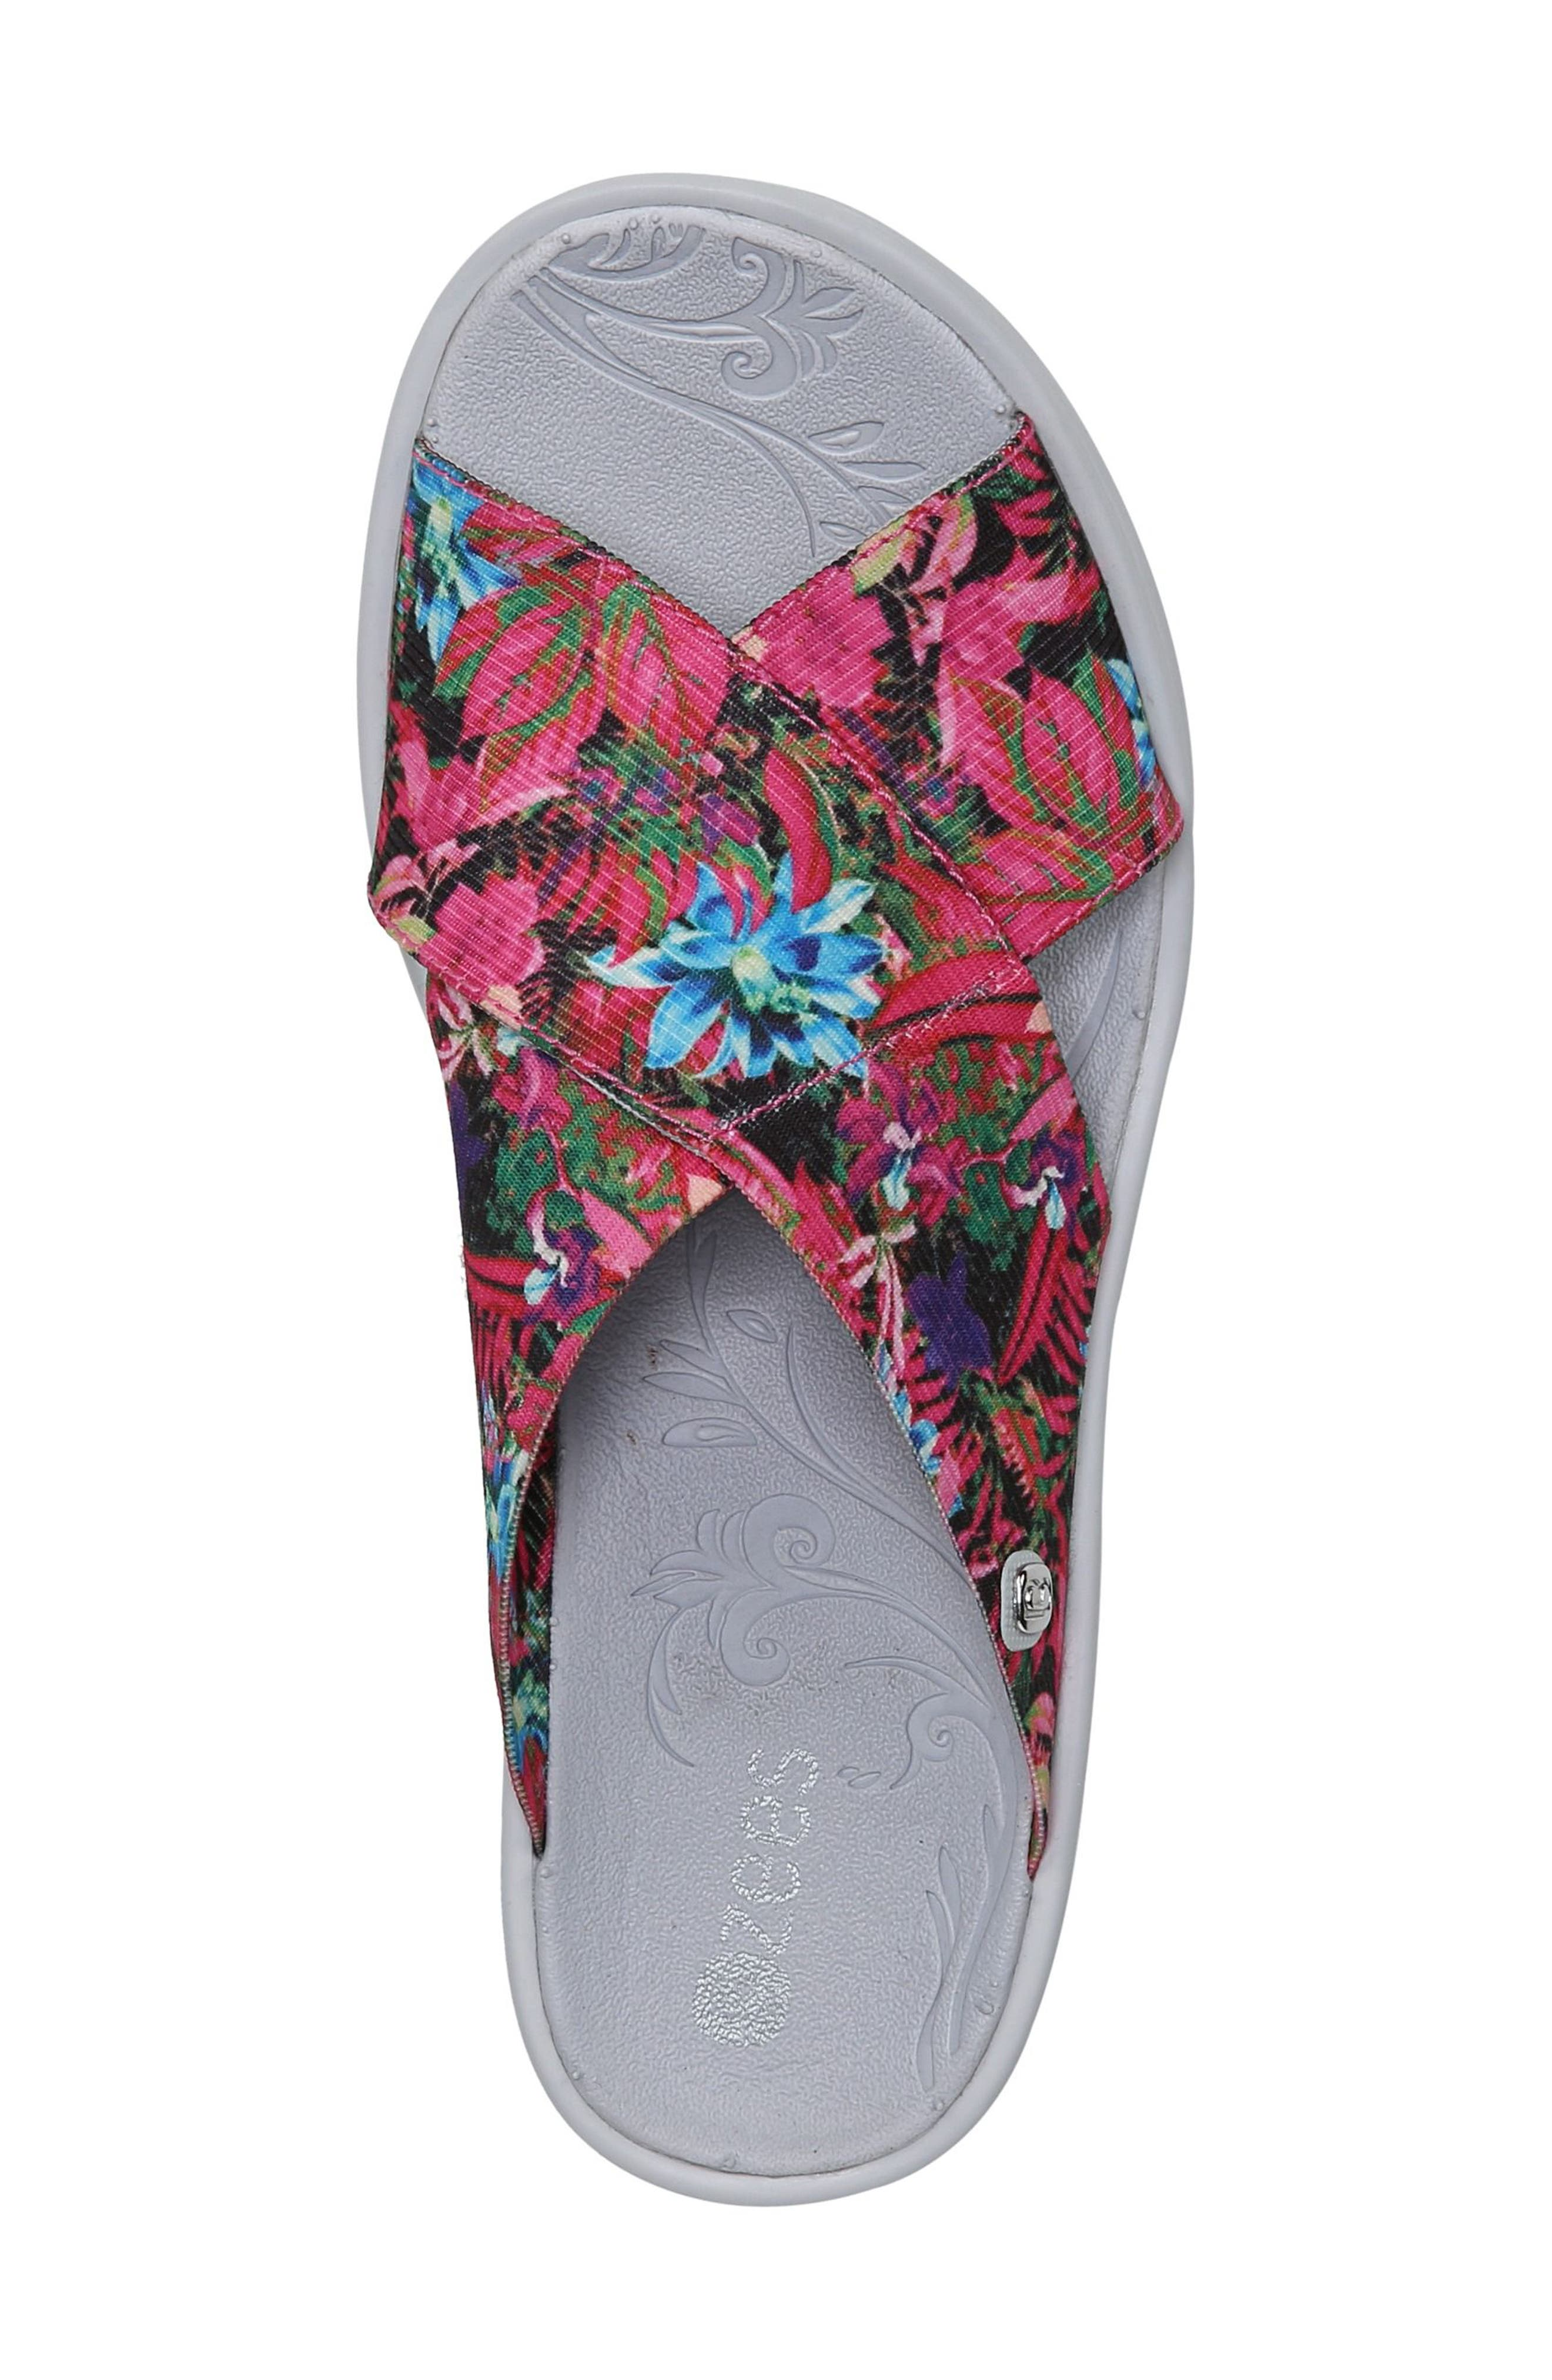 'Desire' Wedge Sandal,                             Alternate thumbnail 5, color,                             Pink Floral Fabric